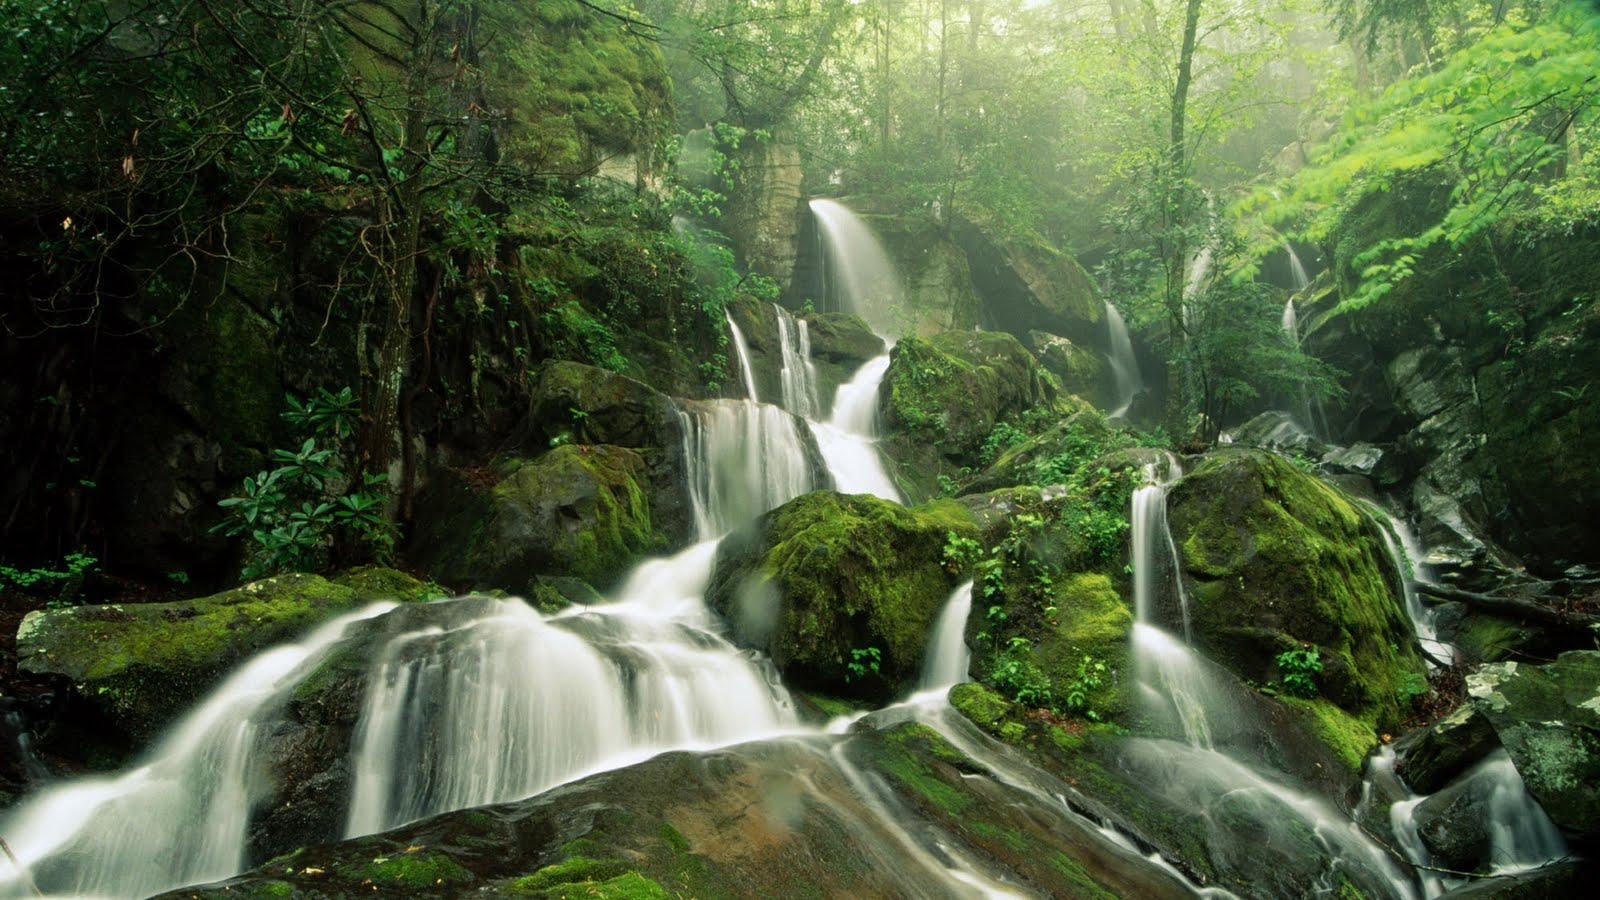 http://1.bp.blogspot.com/-og8AMaeU-RE/UEhXnPNsXrI/AAAAAAAAA3k/8PkHMDWFgfQ/s1600/hd-water-fall-natural-background-wallpaper-for-laptop-widescreen.jpg